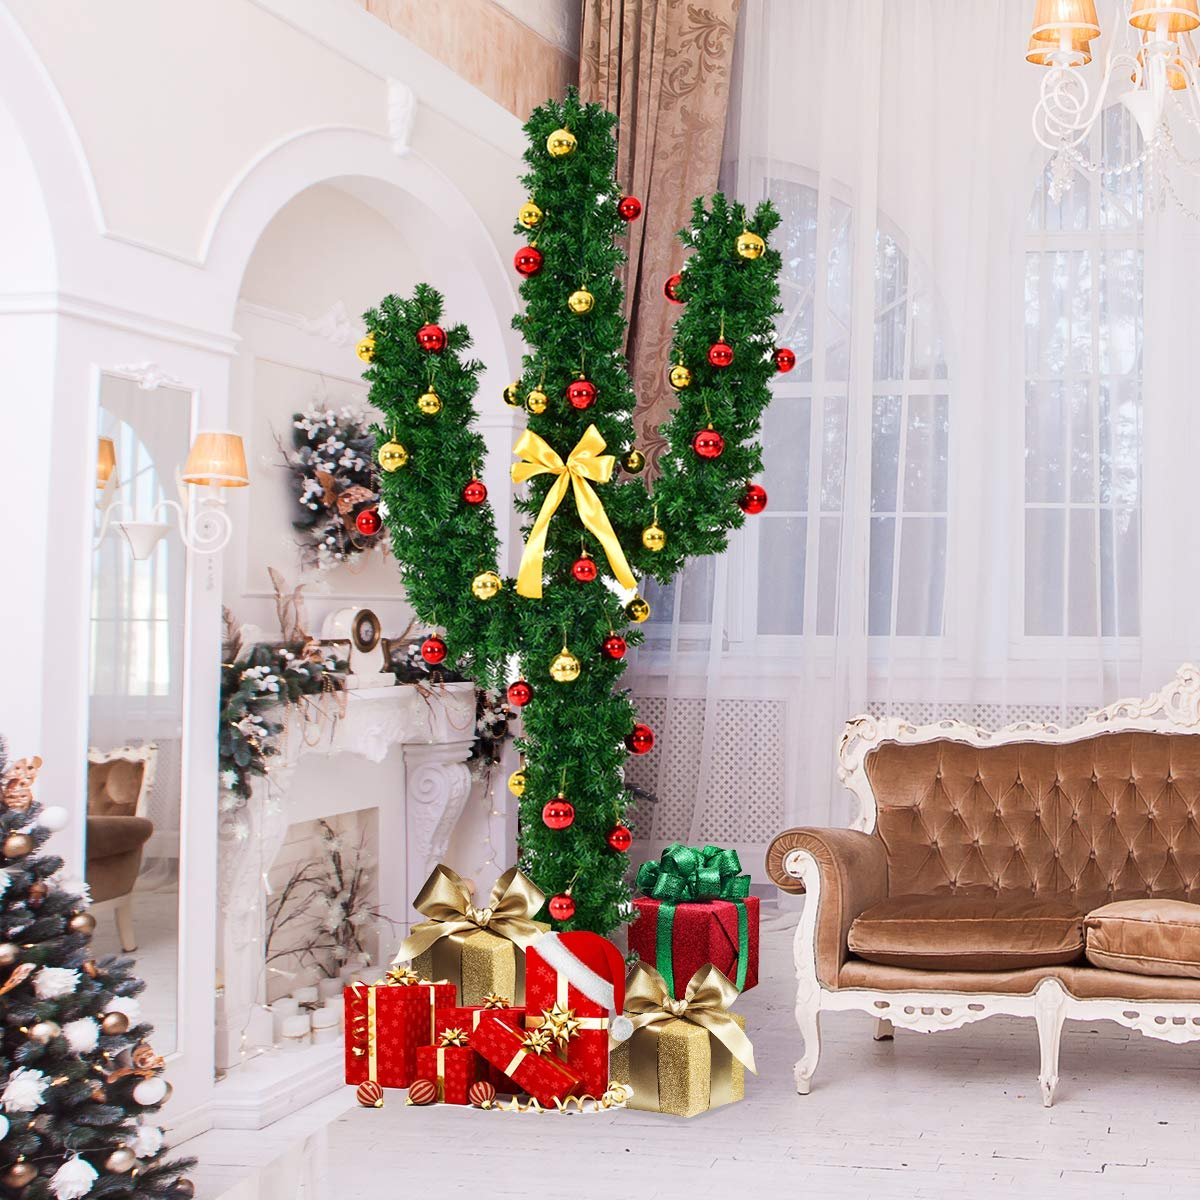 Goplus Pre-Lit Artificial Cactus Christmas Tree with LED Lights and Ball Ornaments